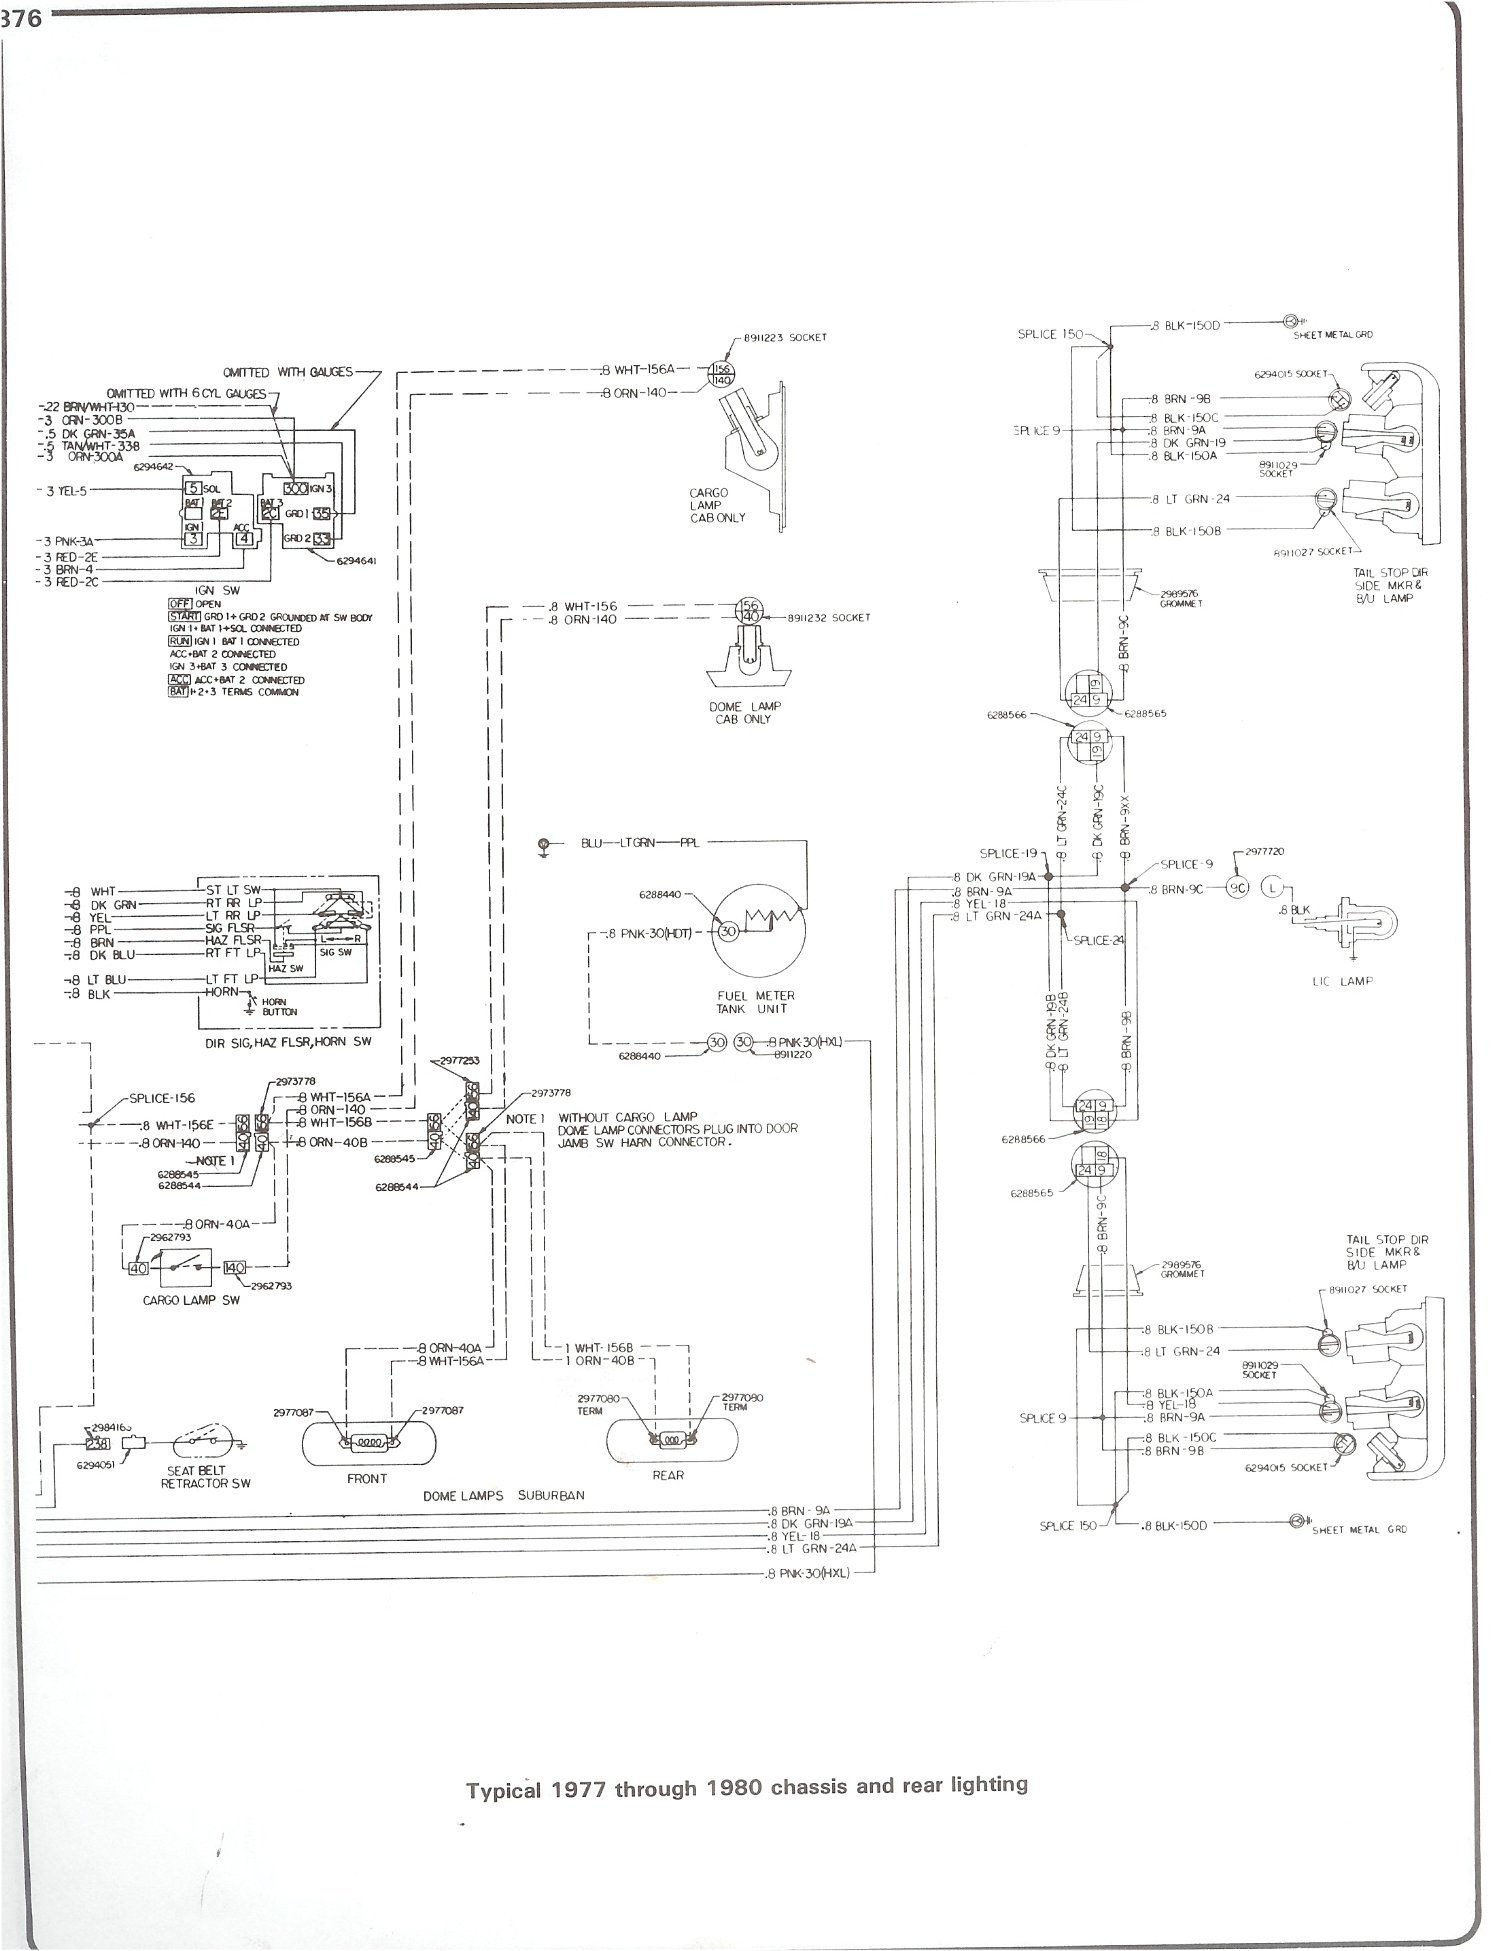 pin by james titus on jsdjdnrn diagram LED Circuit Diagrams diagram